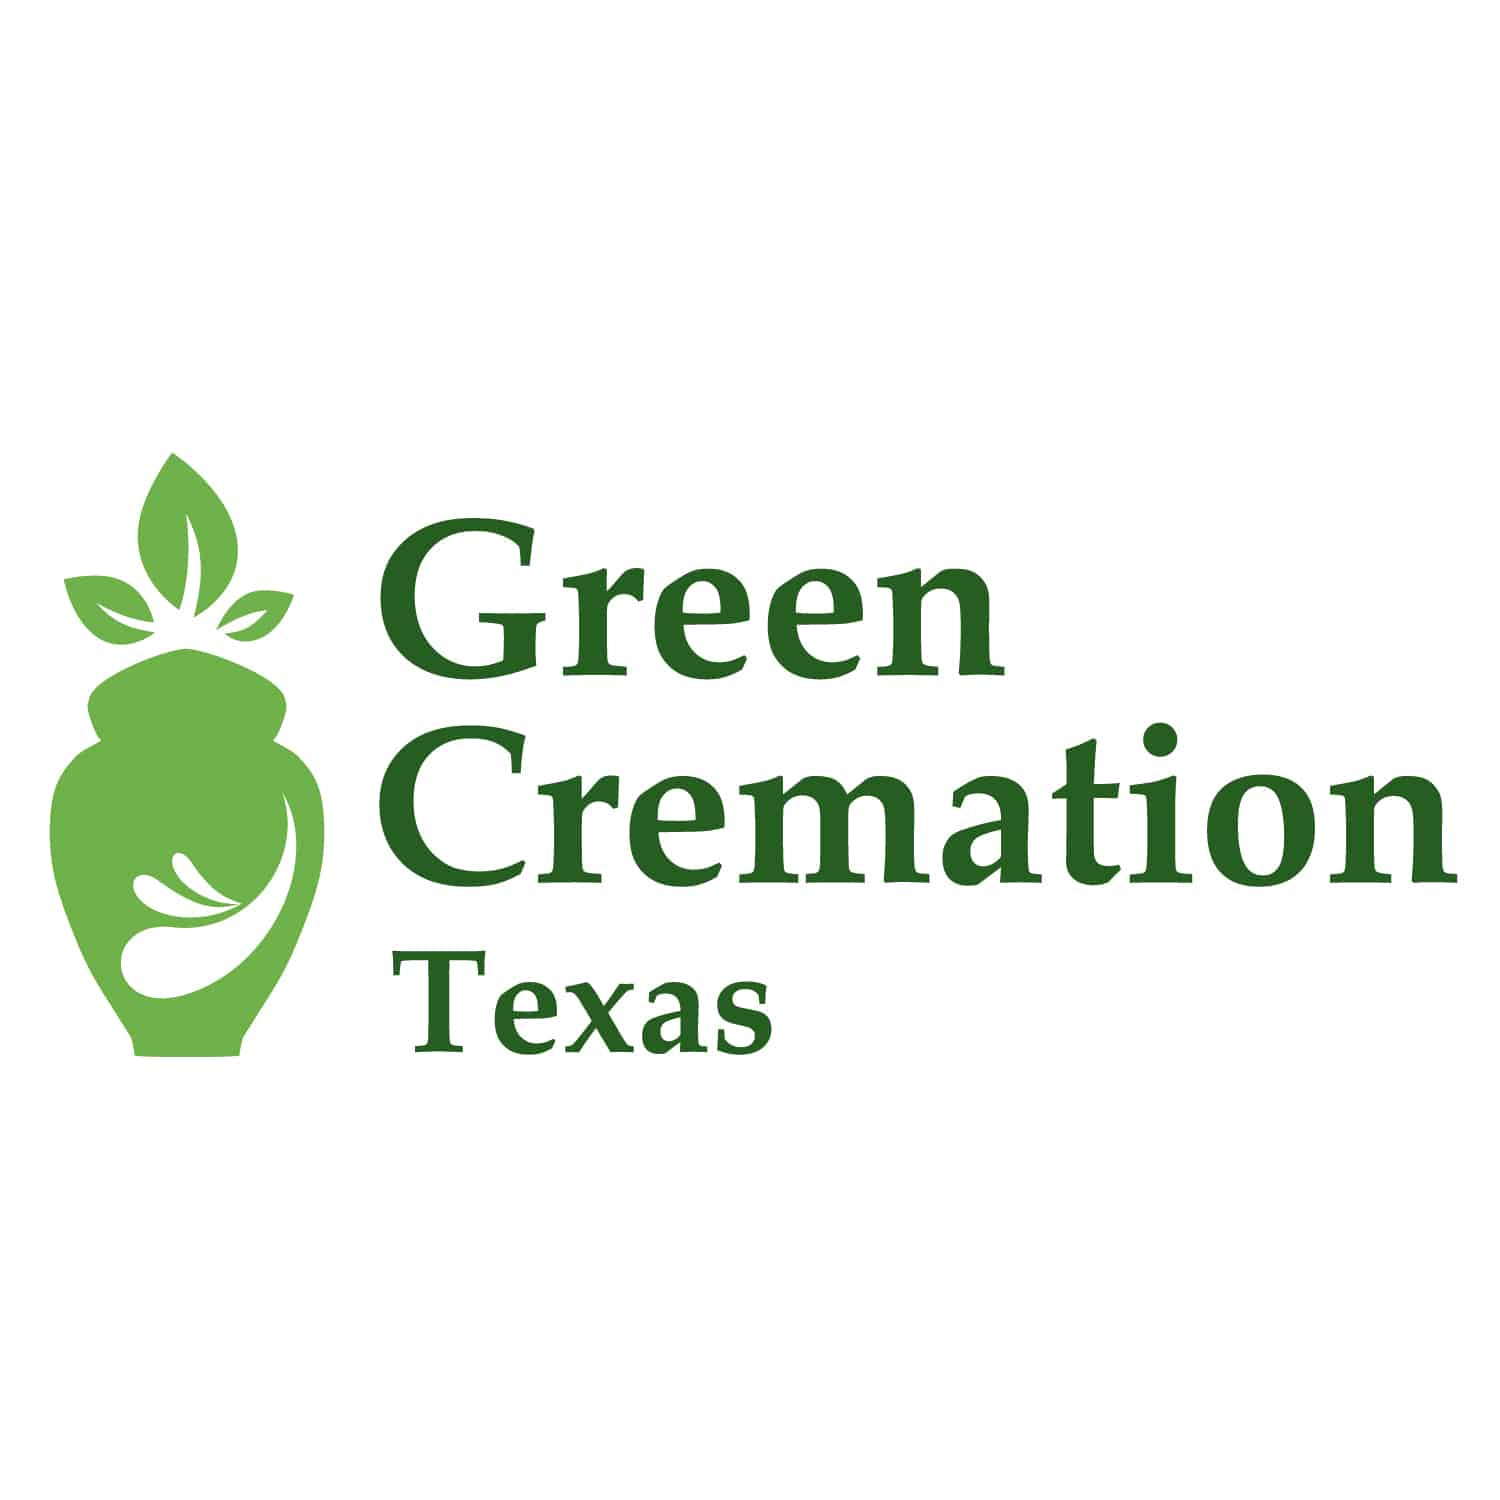 Green Cremation Texas - Austin Funeral Home Offers Environmentally-Friendly Cremation Services in Austin, TX